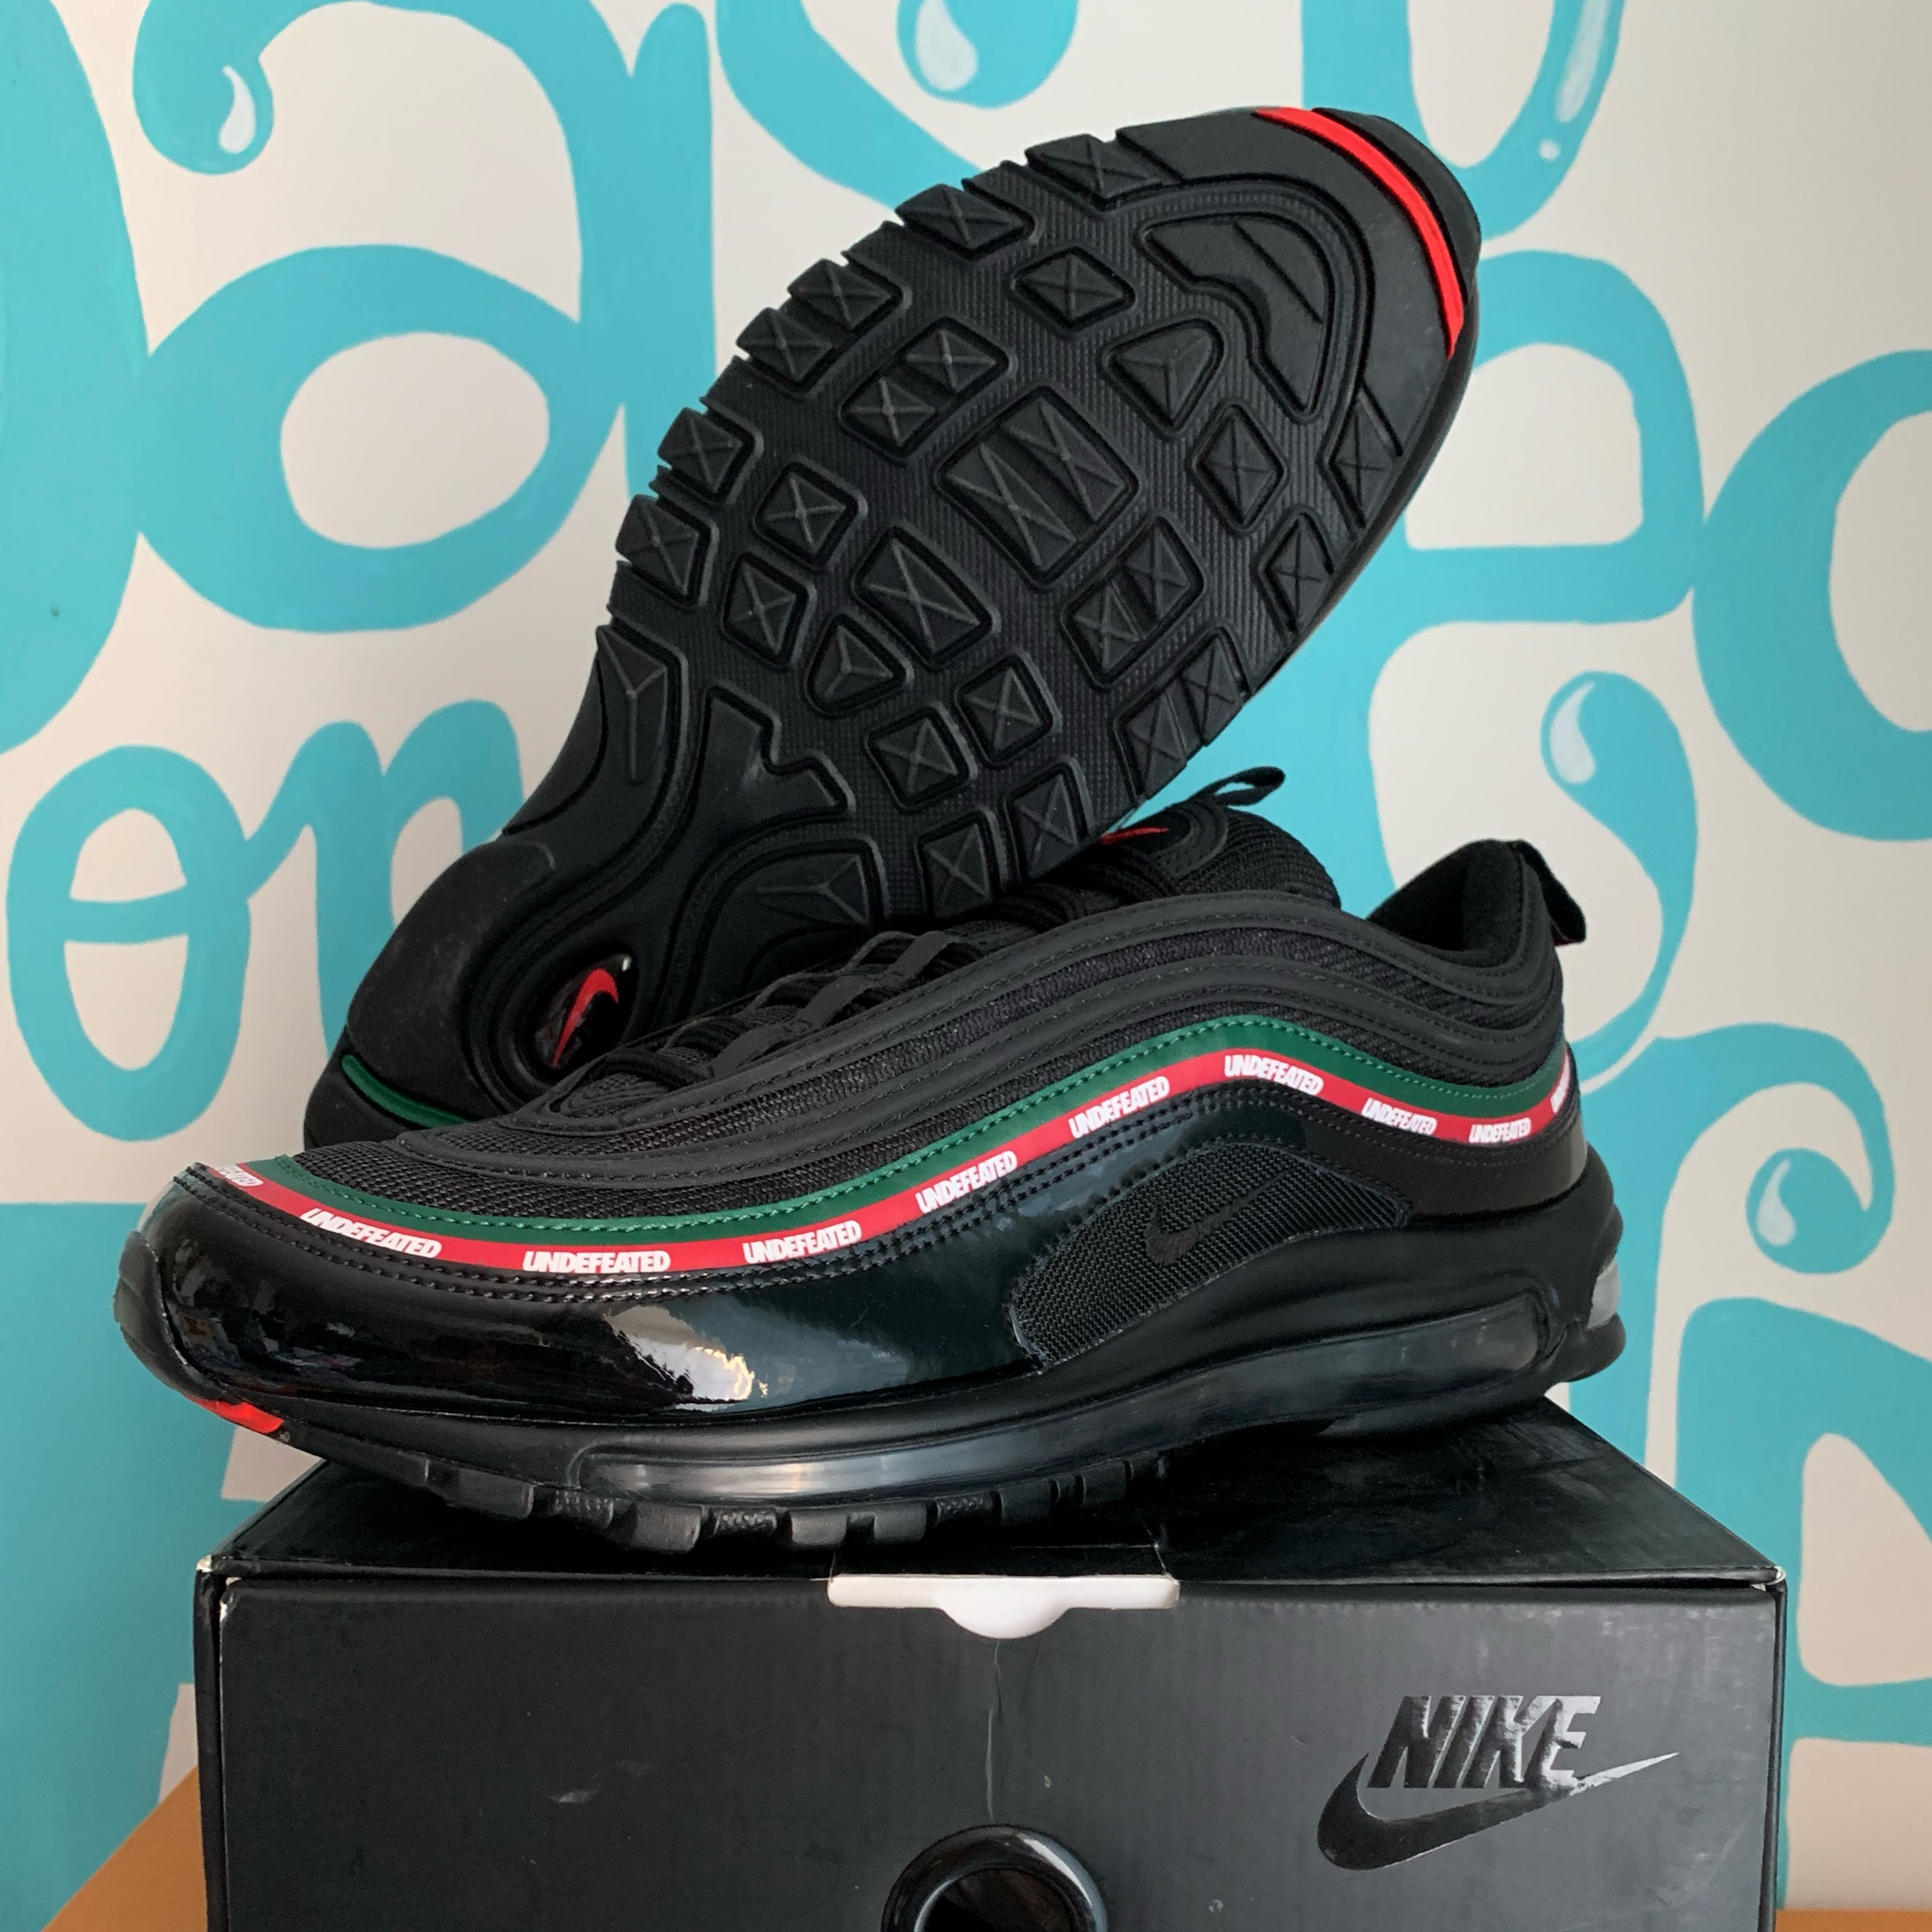 competitive price 2fbf8 17b89 Nike Air Max 97 Undefeated Black